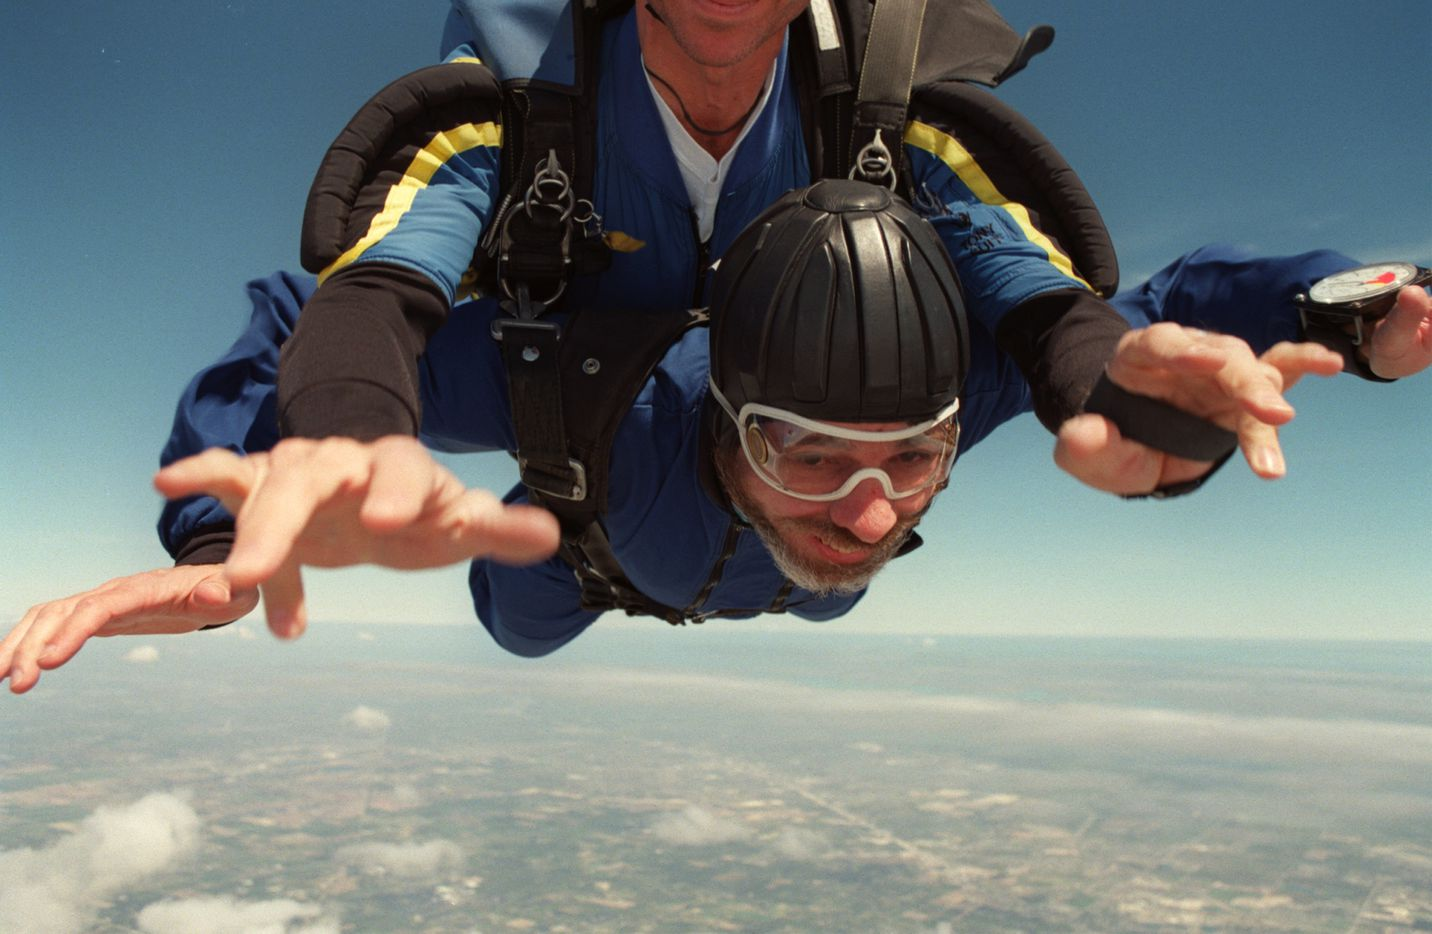 Jeffrey Weiss took the plunge and went skydiving in 2004.